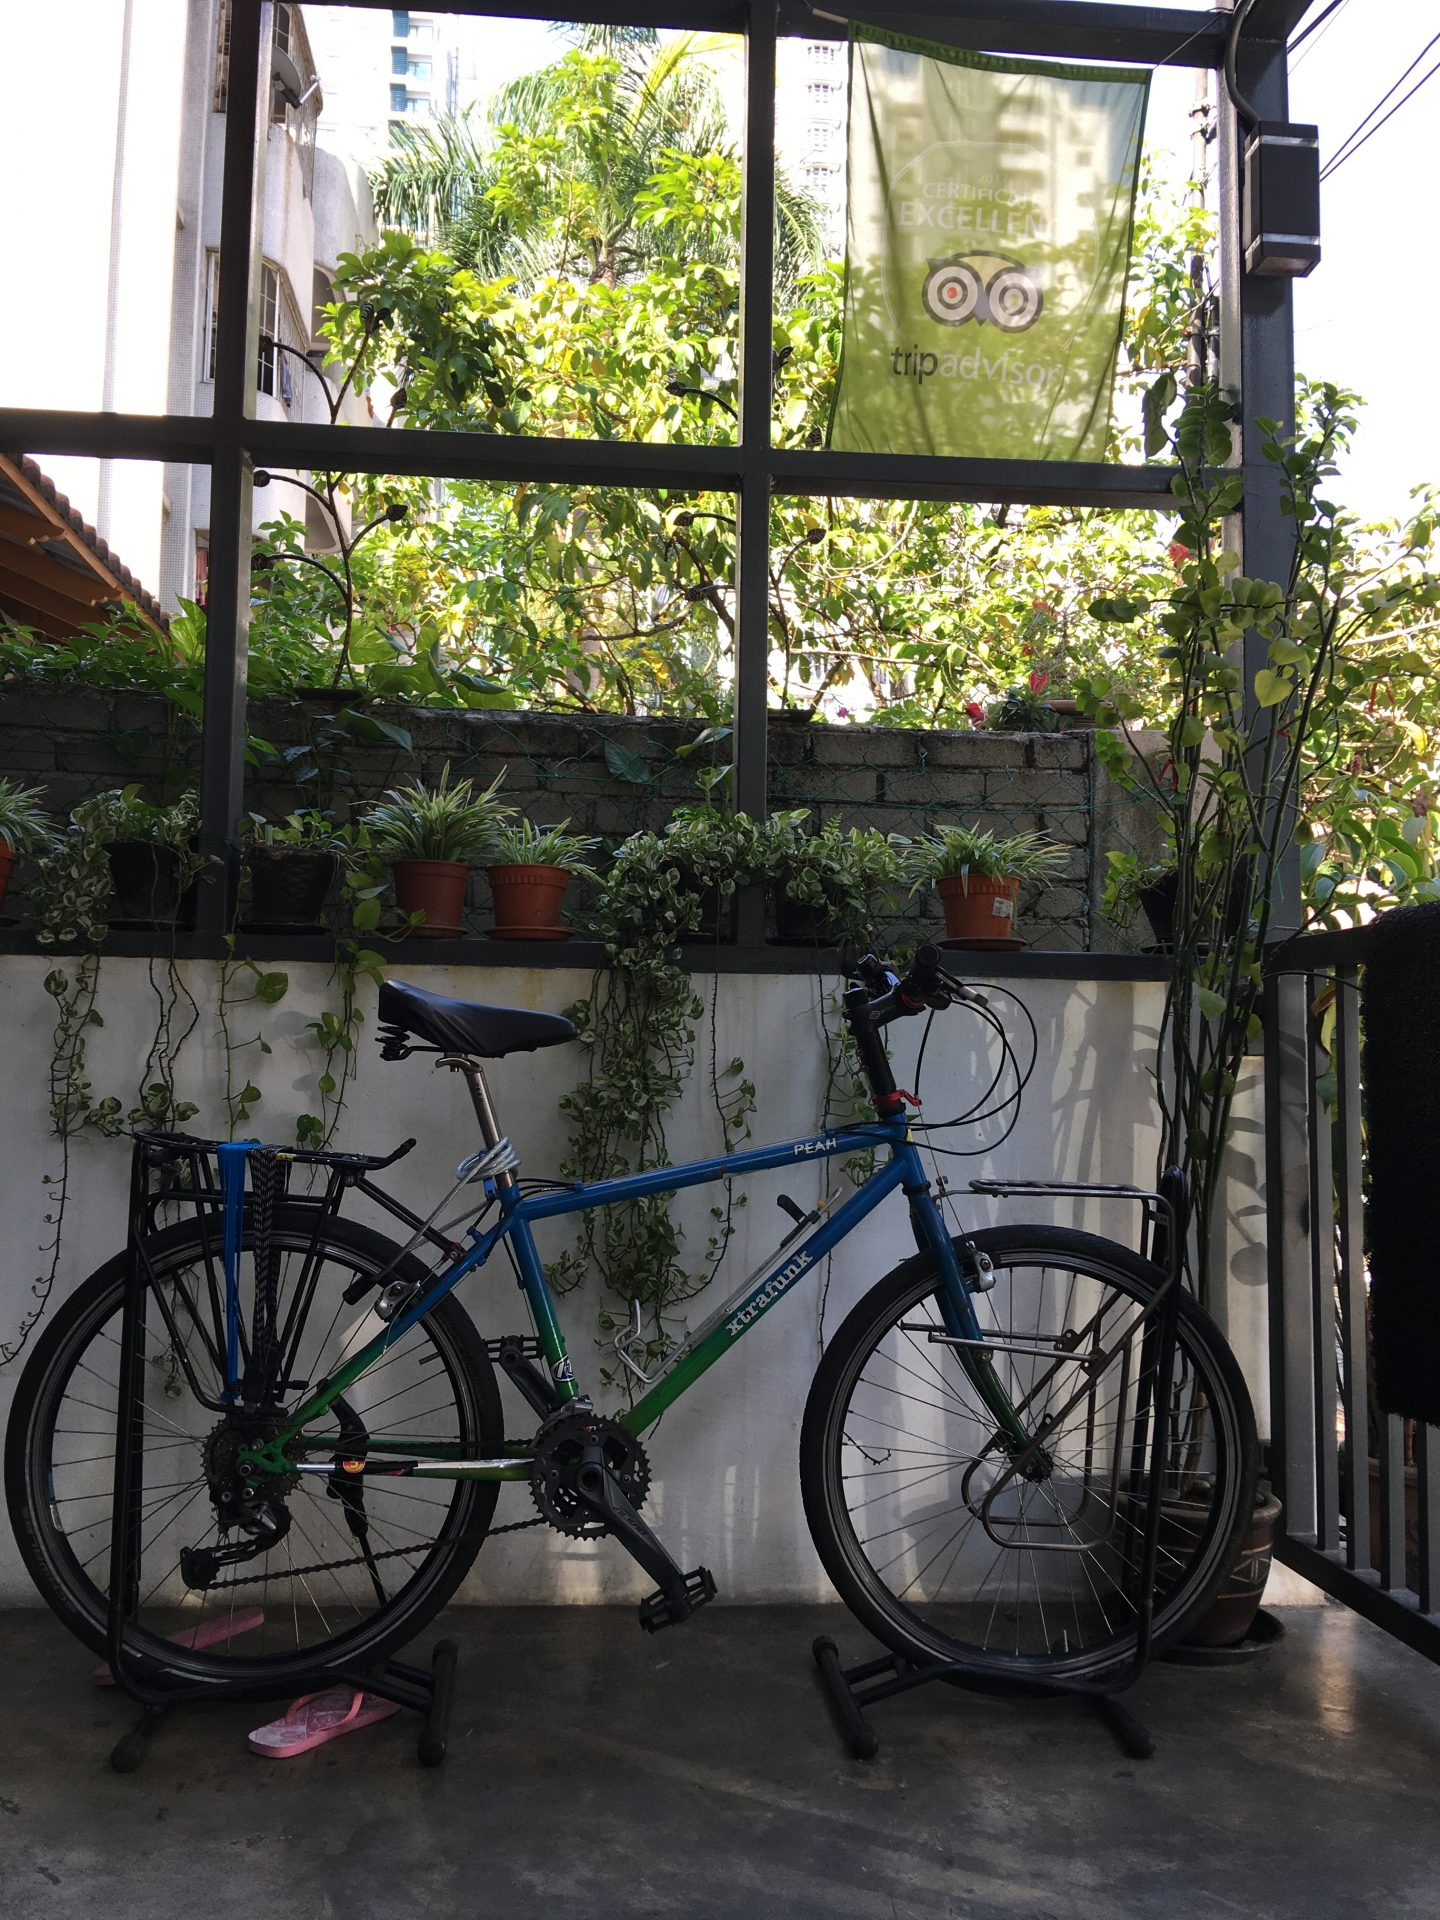 Illustrated by Sade - Bicycle at reception entry of Paper Plane Hostel in K.L.